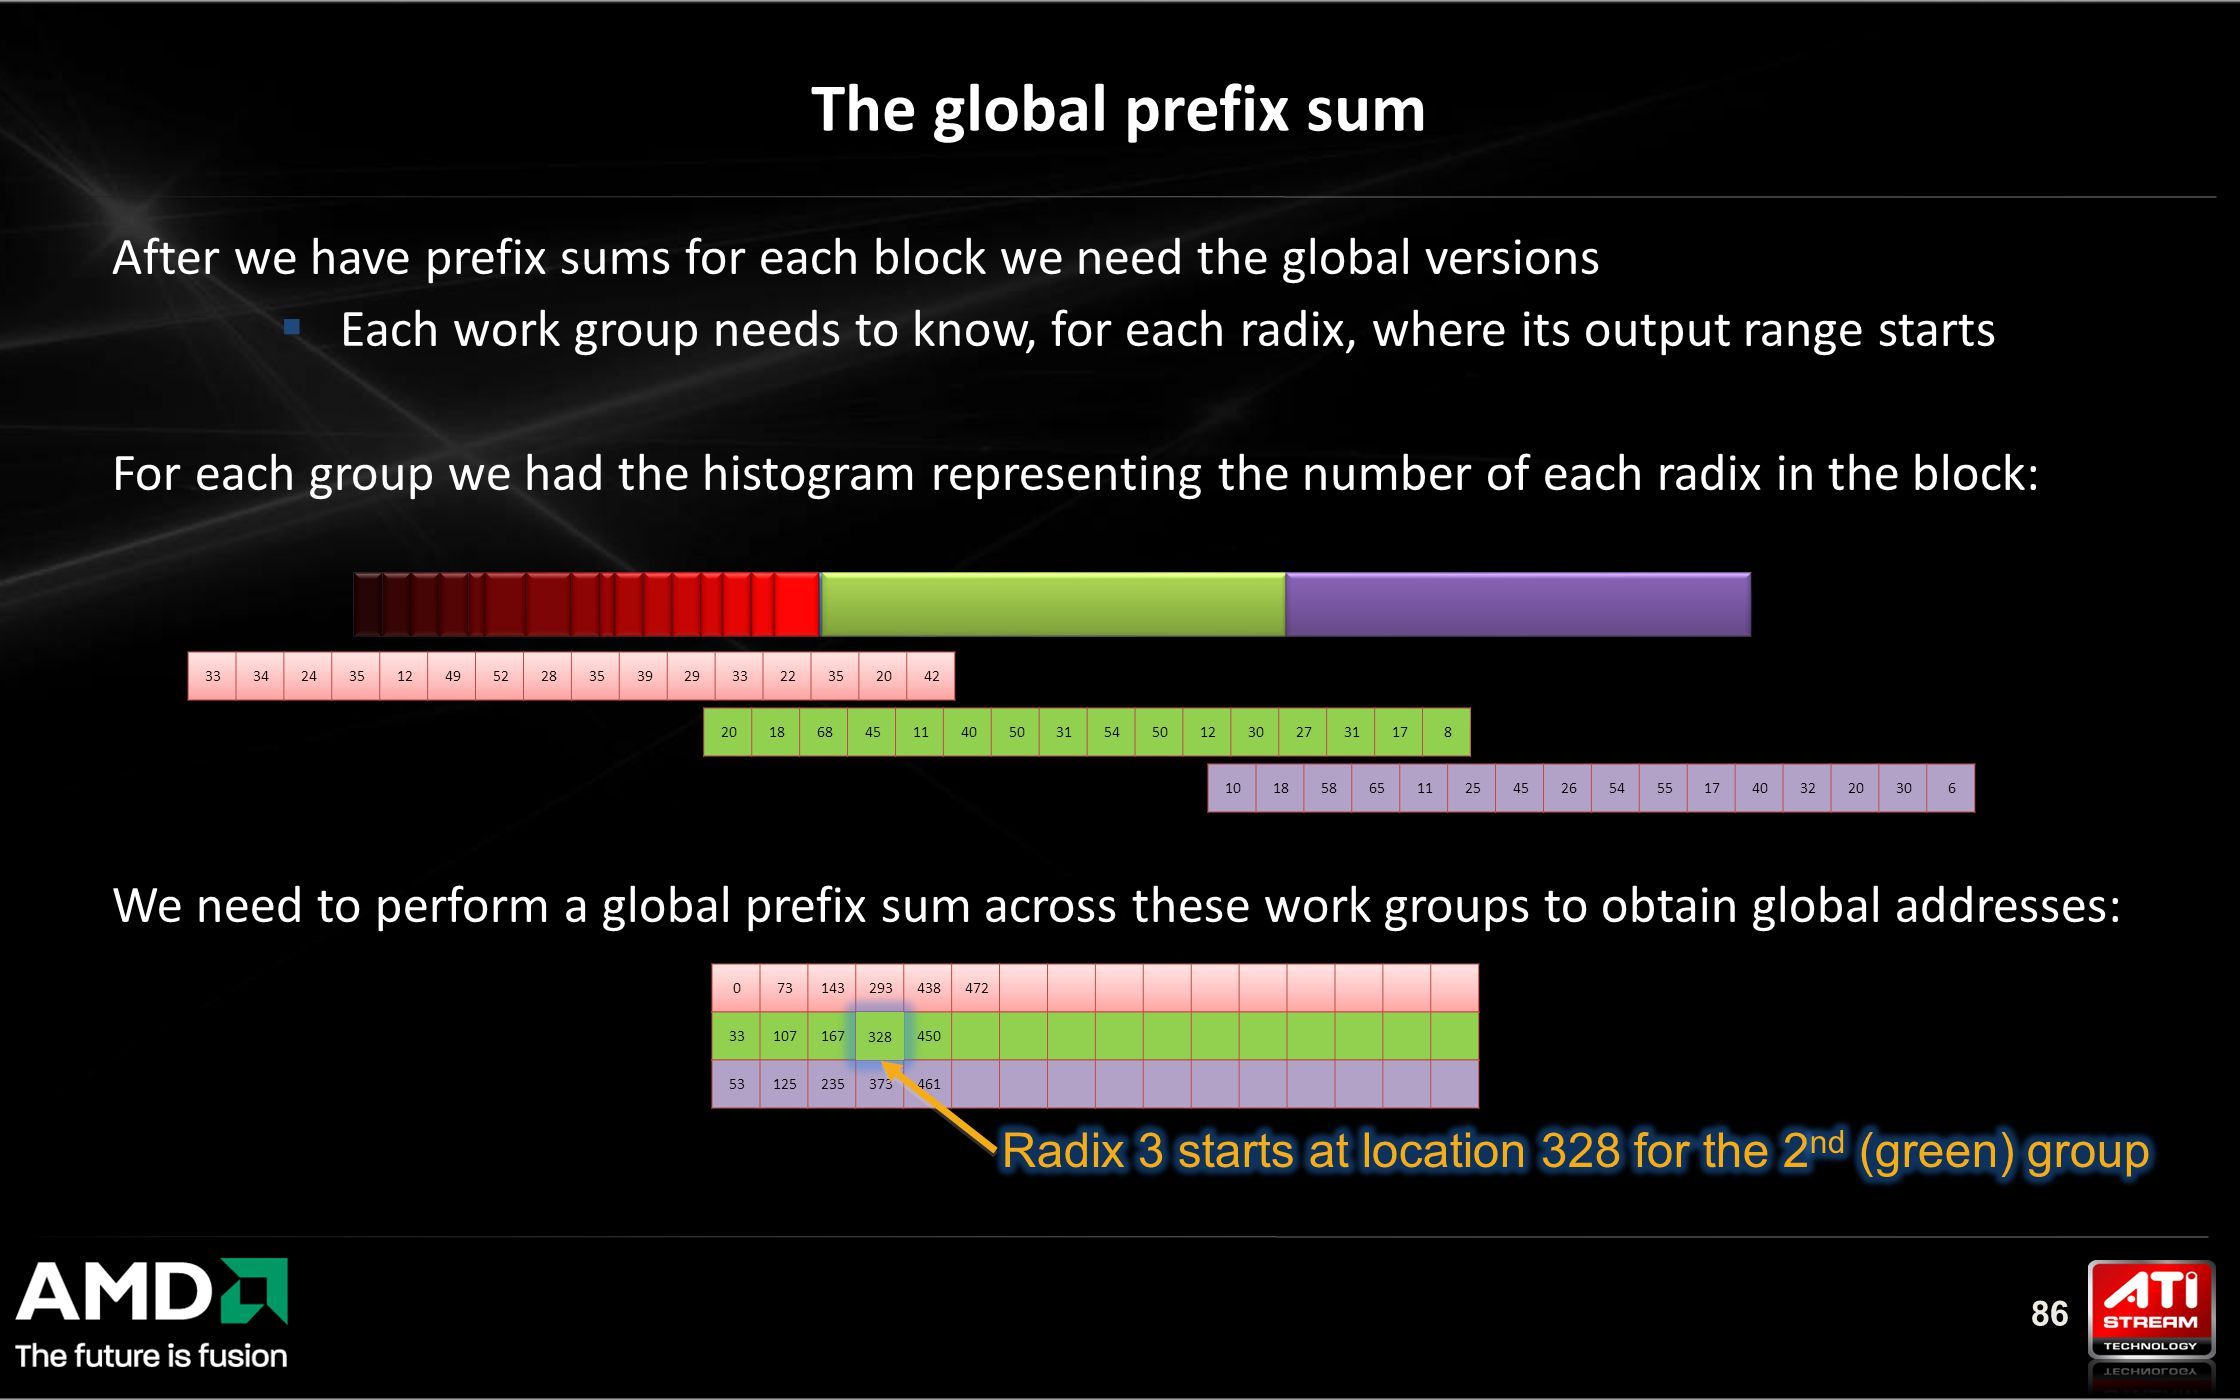 86 The global prefix sum After we have prefix sums for each block we need the global versions  Each work group needs to know, for each radix, where its output range starts For each group we had the histogram representing the number of each radix in the block: We need to perform a global prefix sum across these work groups to obtain global addresses: 328